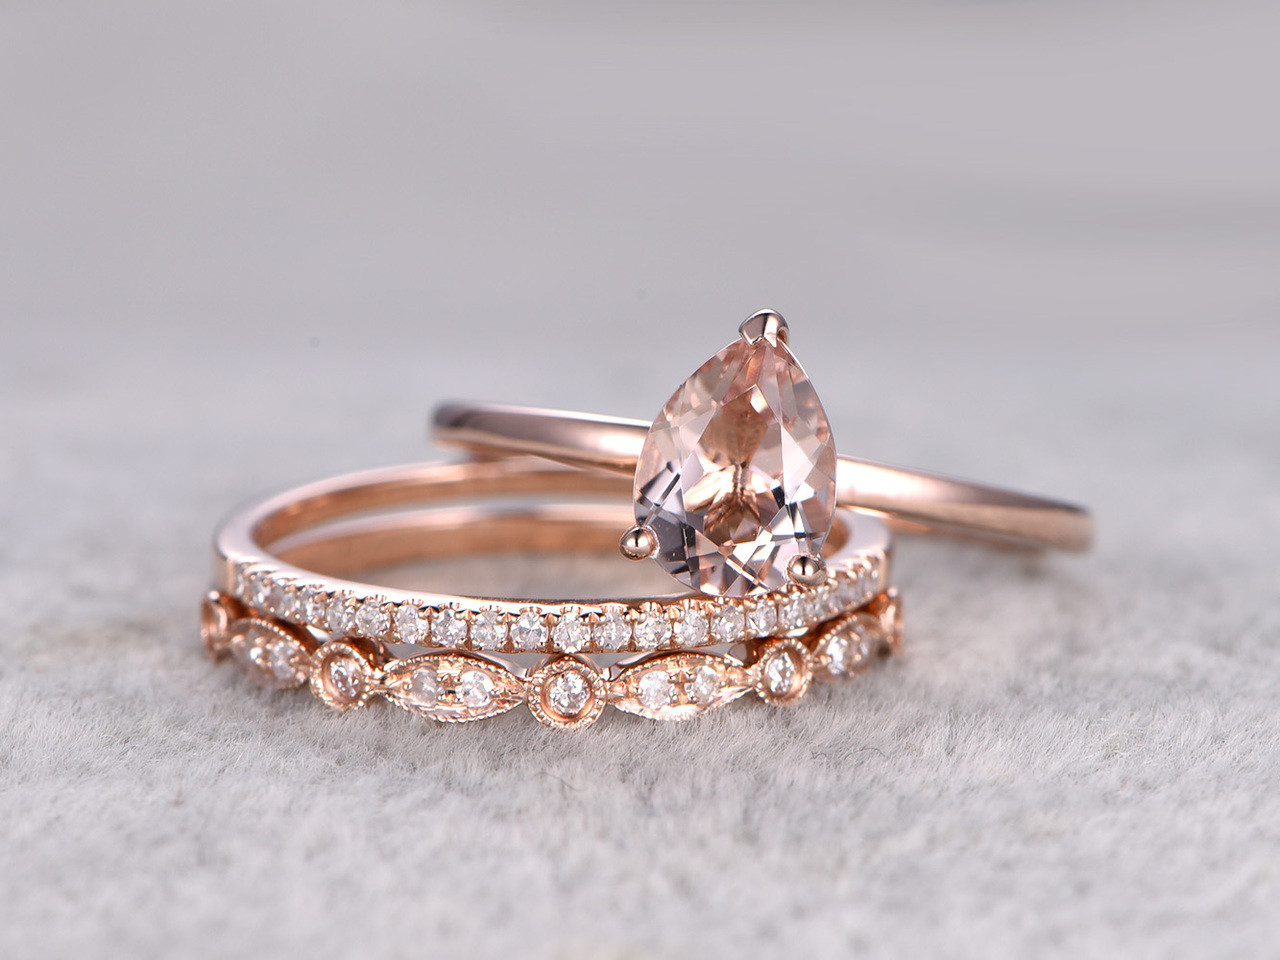 3pcs pear shaped solitaire morganite wedding set antique diamond bridal ring 14k rose gold art deco - Morganite Wedding Ring